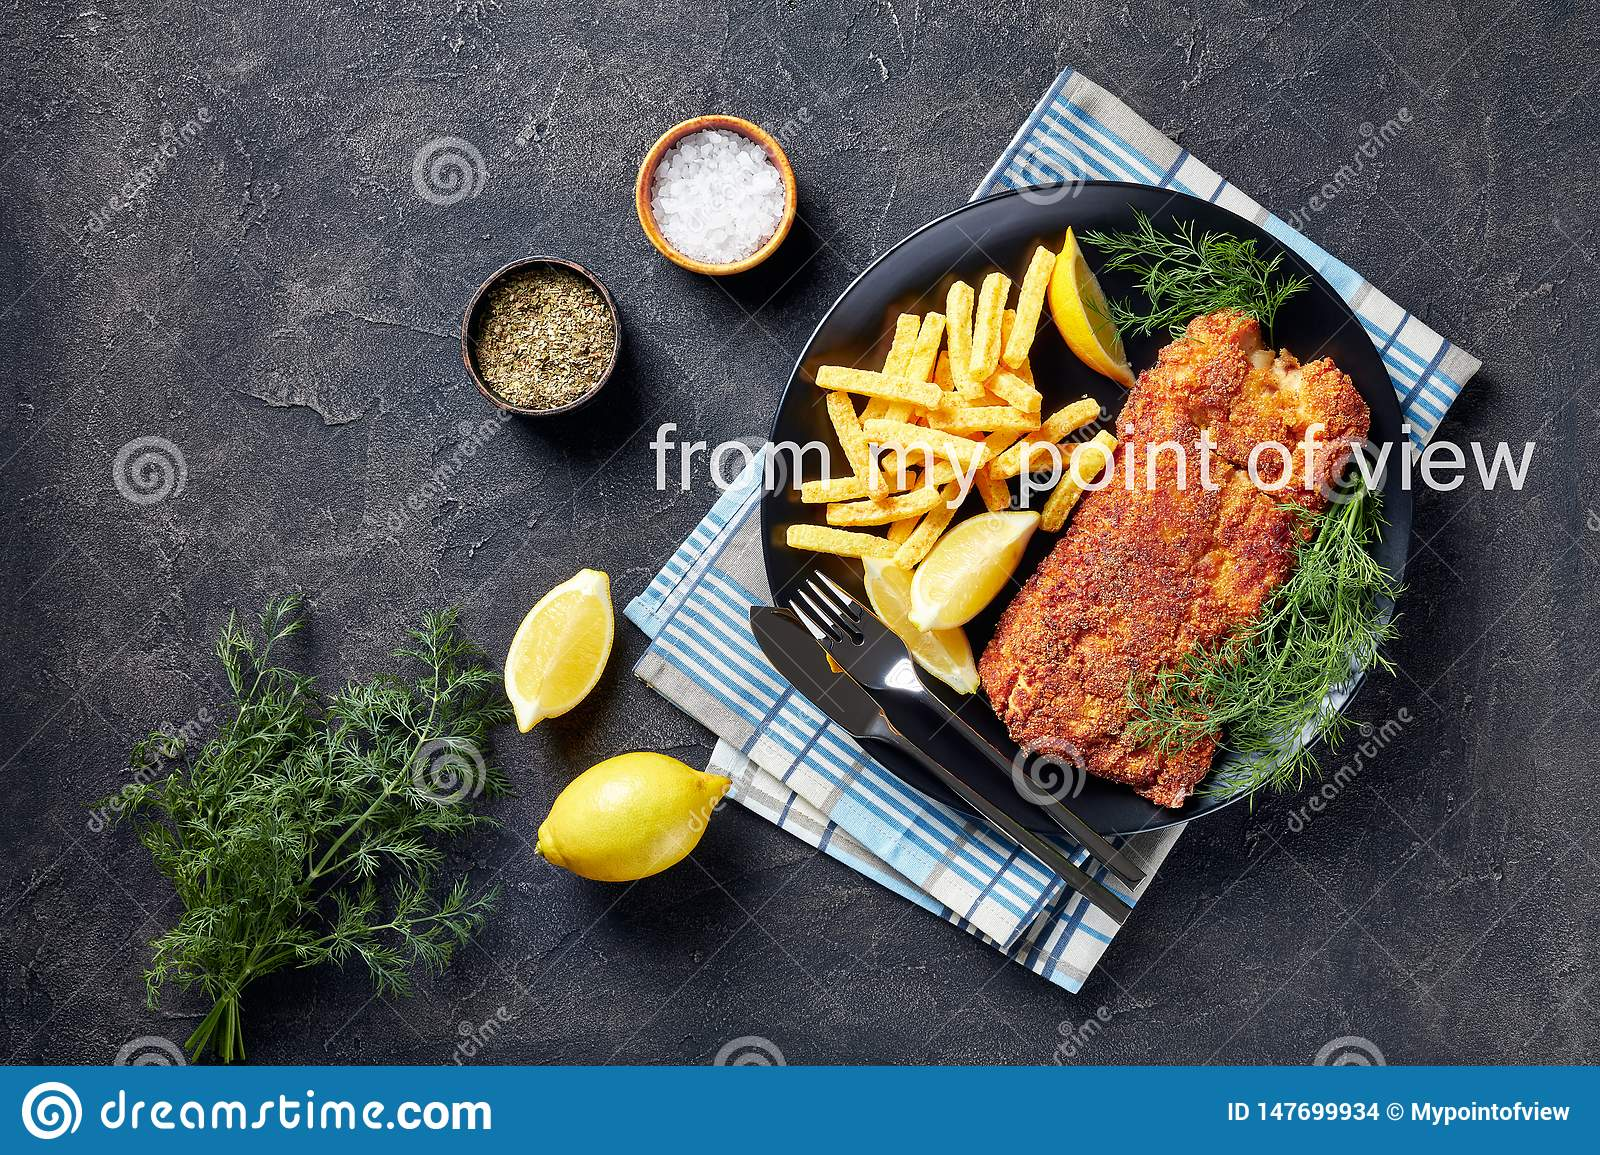 Close-up of Breaded hake fillet served with chips, fresh dill and lemon slices on a black plate on a white concrete table,